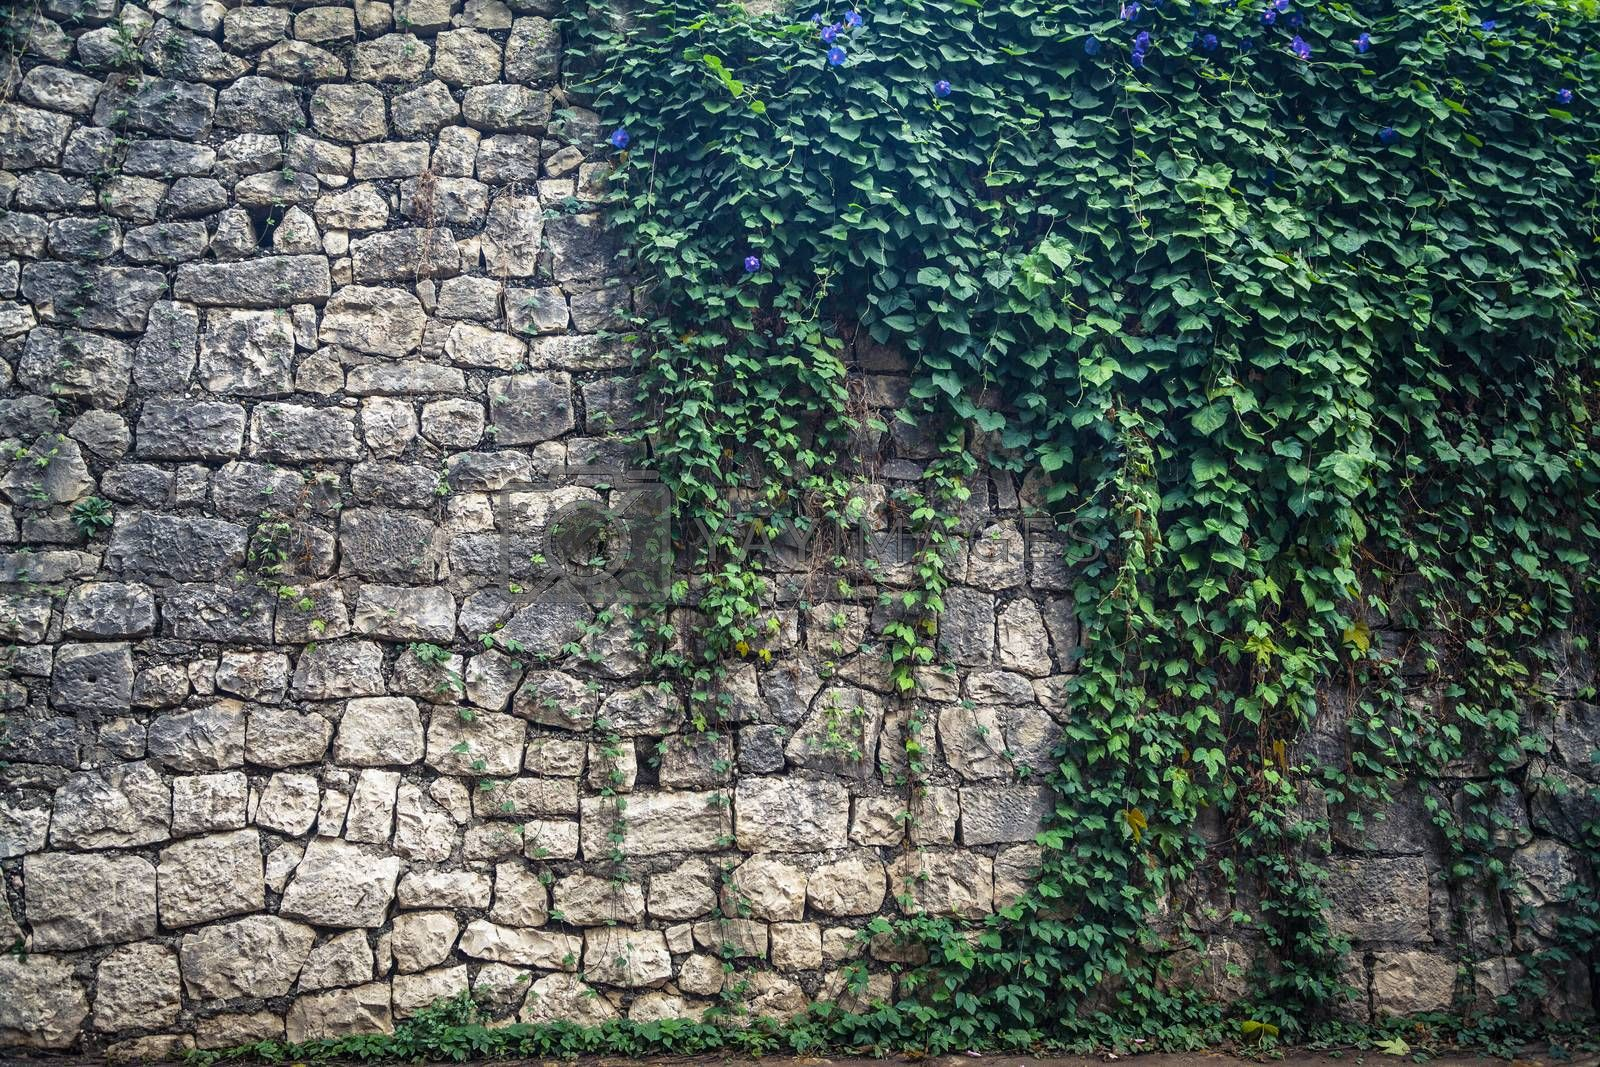 Ivy with violet flowers climbing the old wall